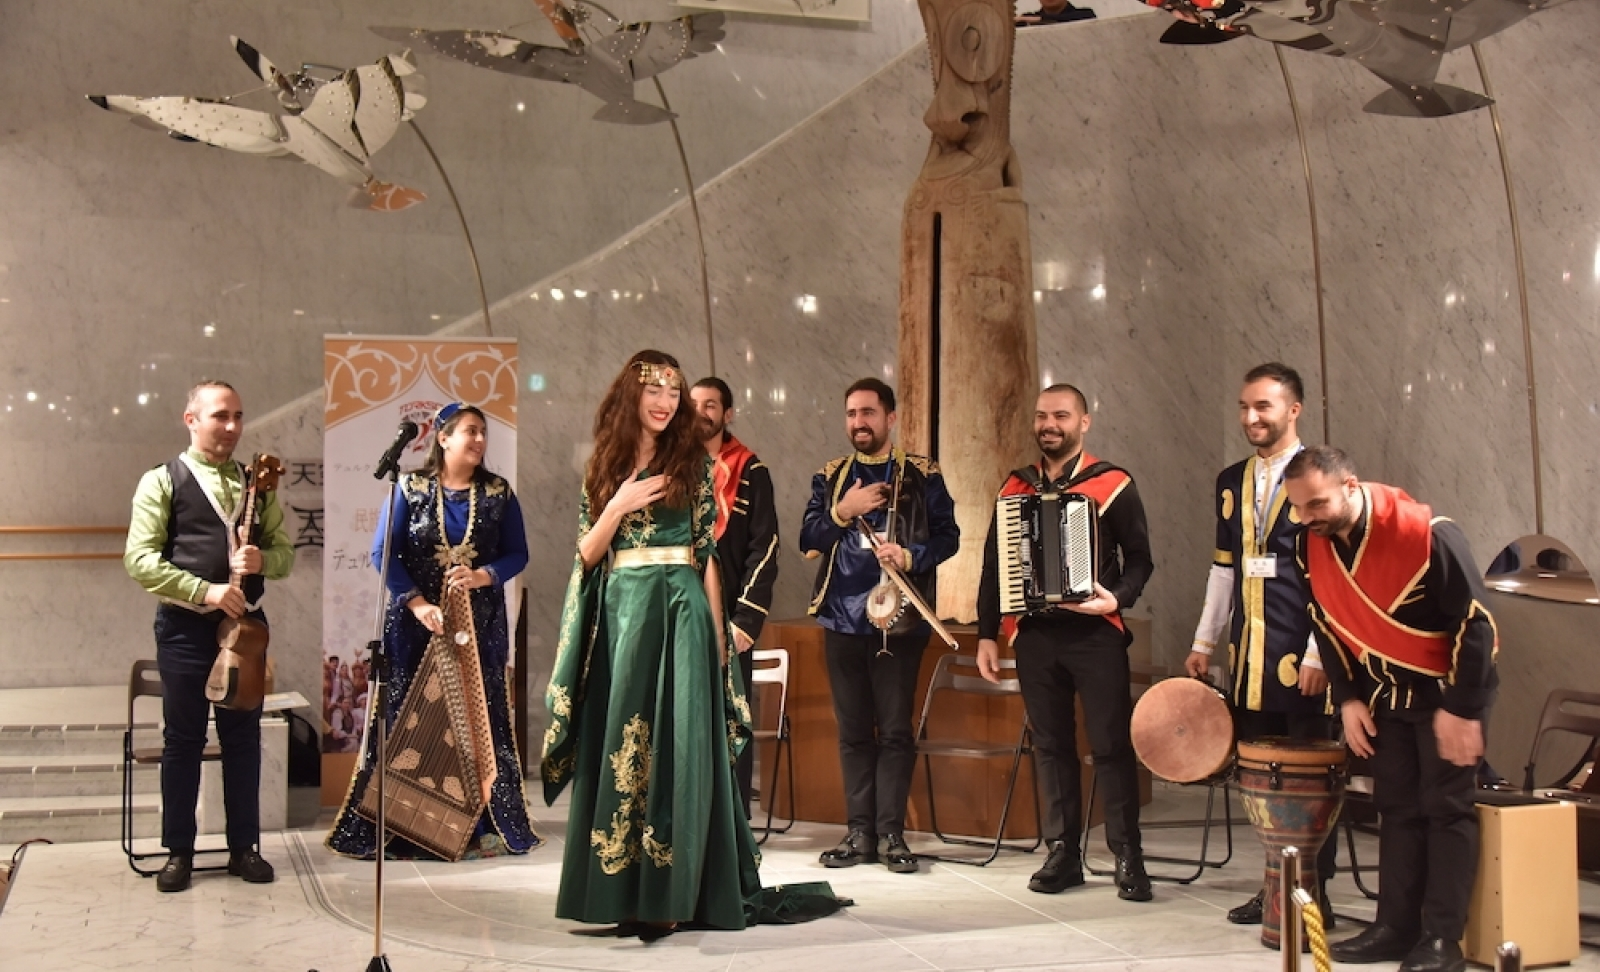 Concert of TURKSOY at the Museum of Music Instruments in Japan